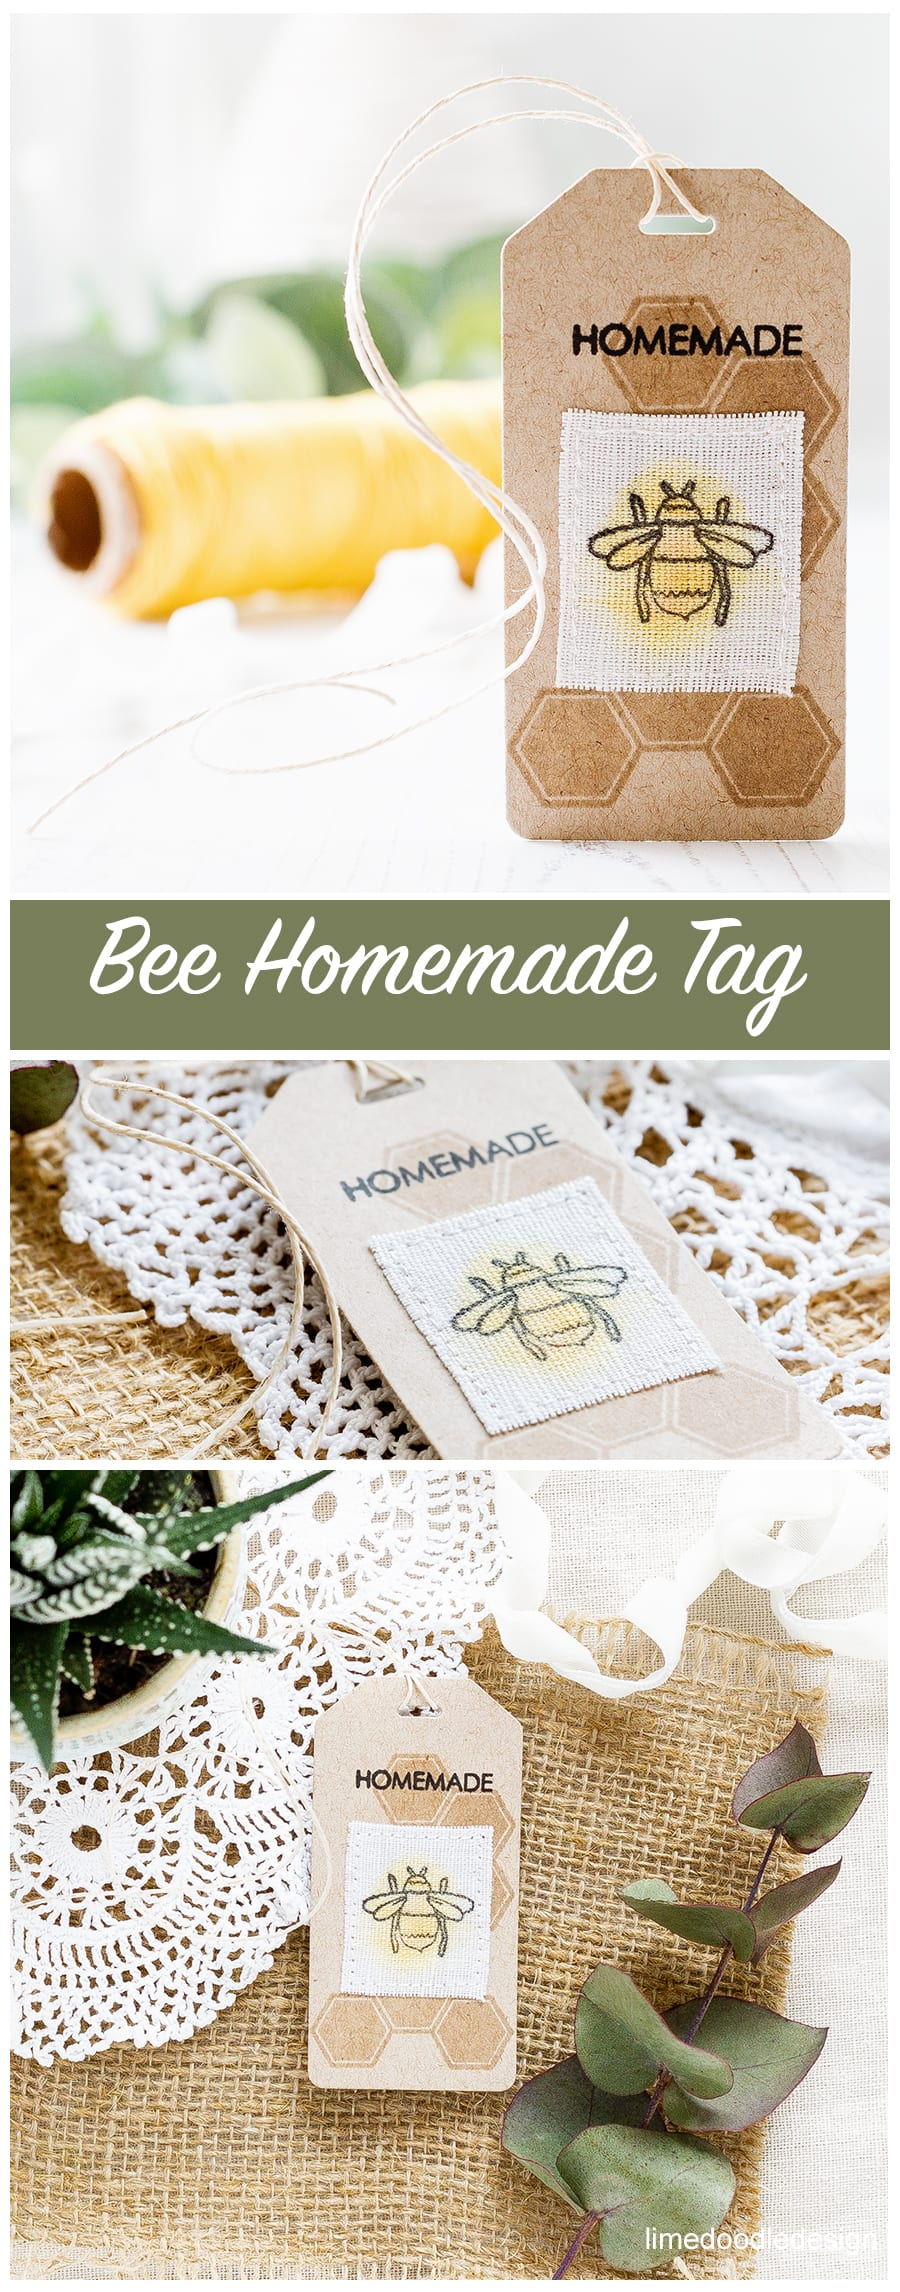 Reviewing the new July 2017 release from Altenew. Handmade homemade bee tag by Debby Hughes. Find out more: http://limedoodledesign.com/2017/07/altenew-july-2017-release-blog-hop-giveaway/